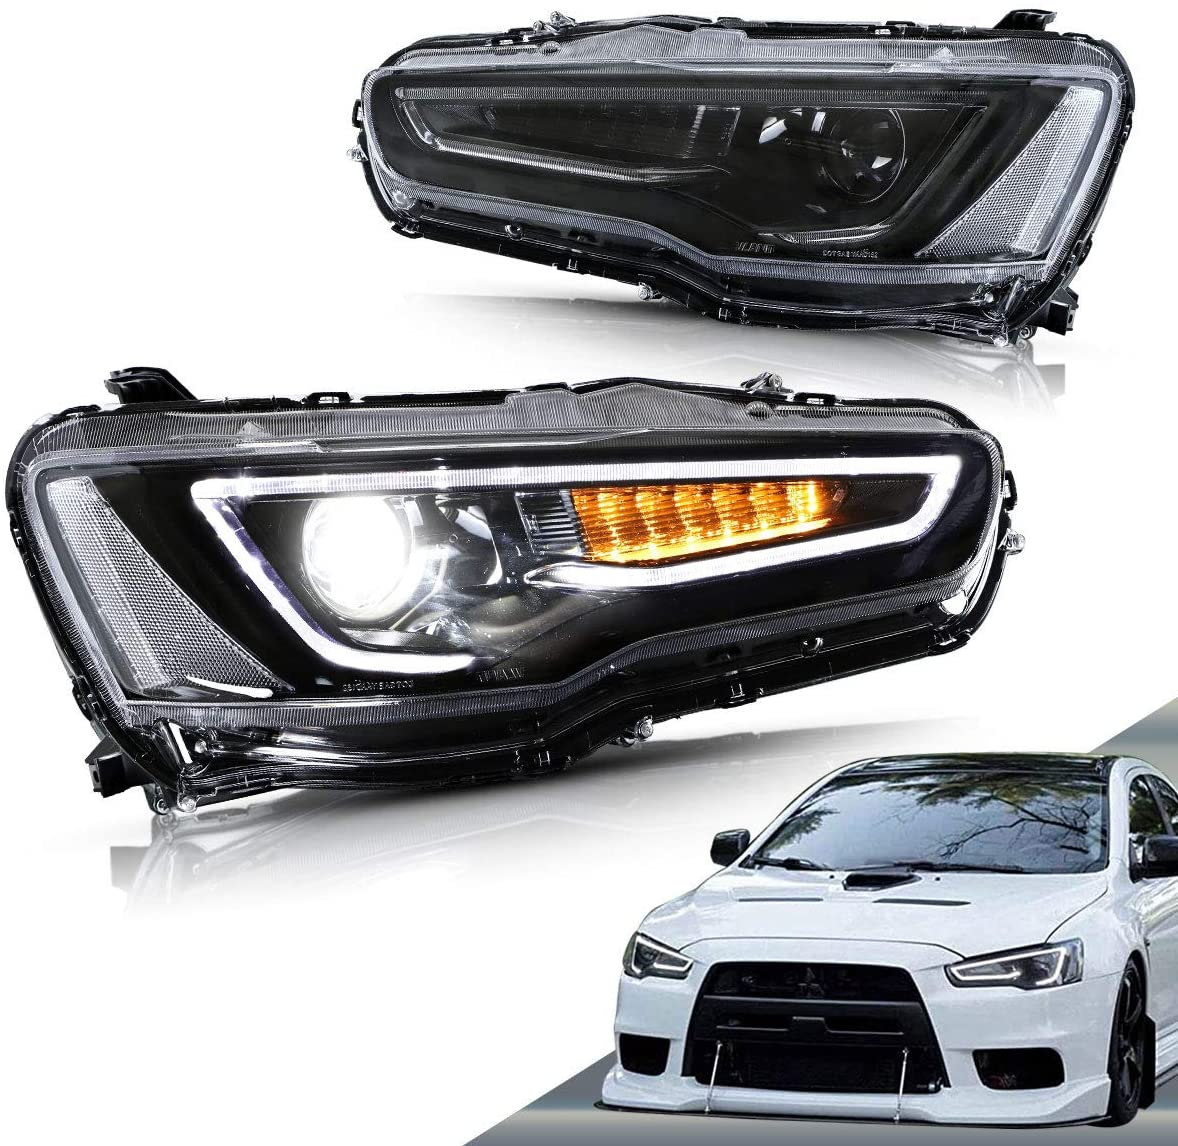 Vland black housing sequential Headlights for Evox/lancer - GUMOTORSPORT